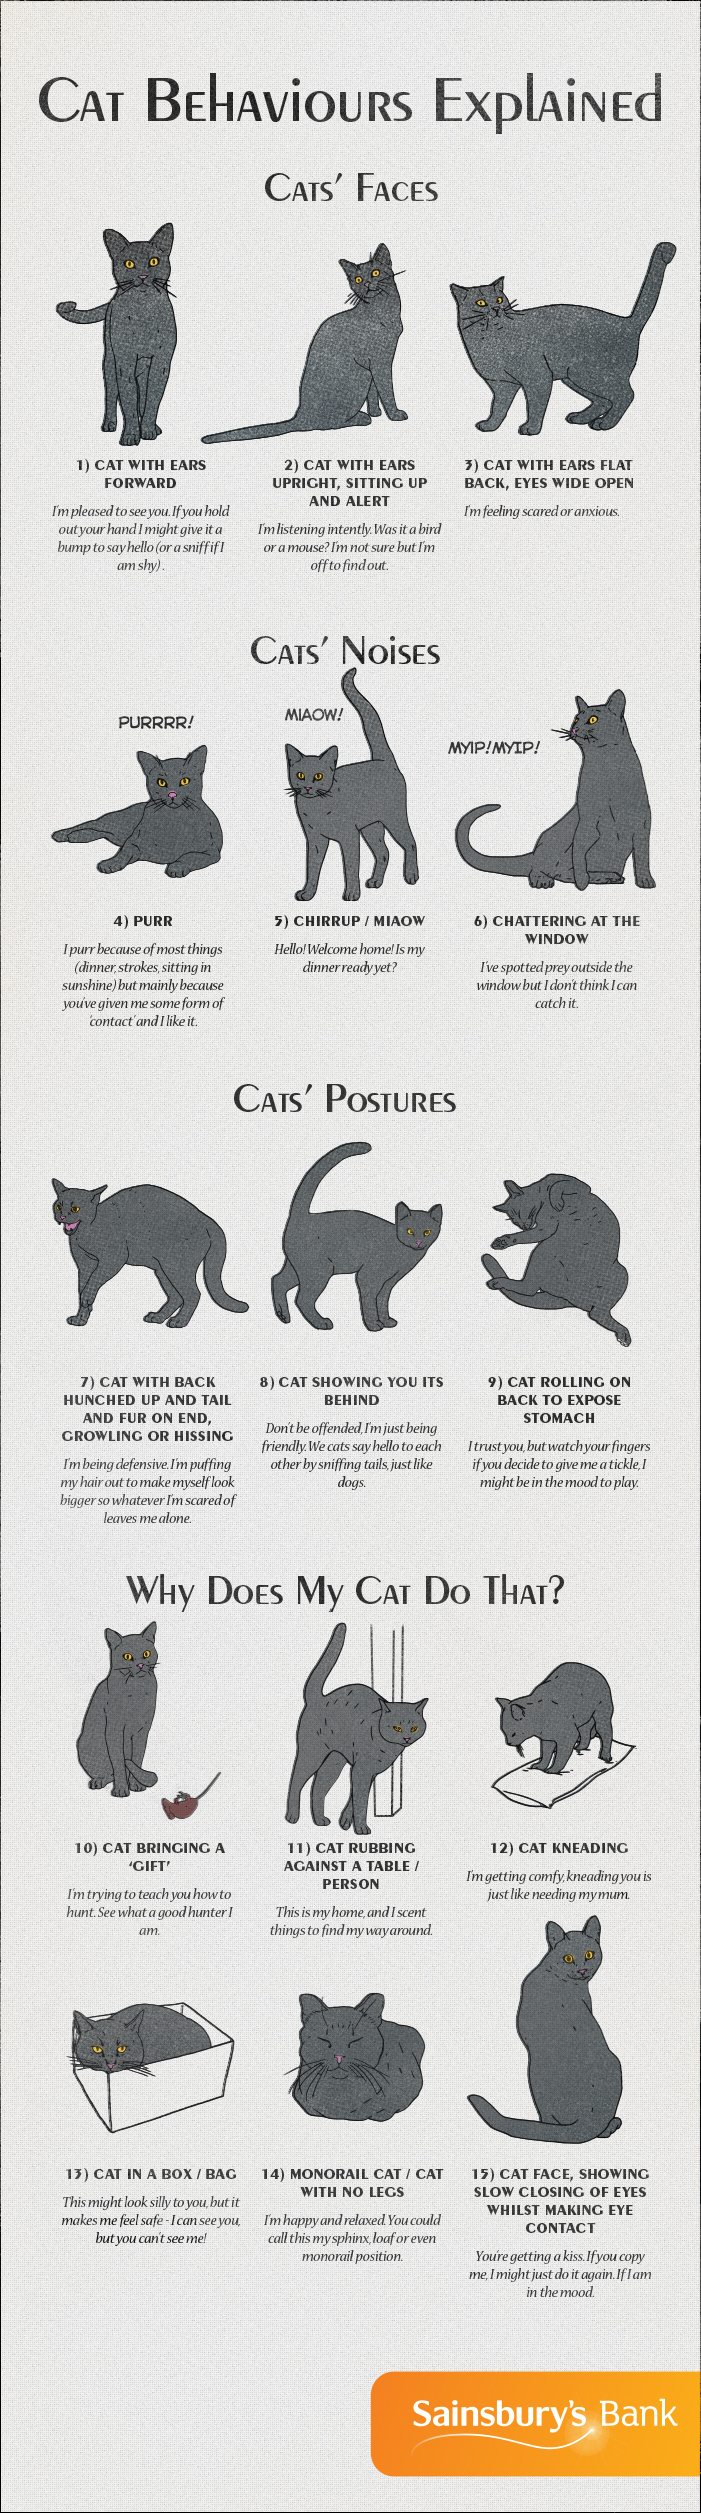 Cat behaviour guide by Sainsbury's Bank